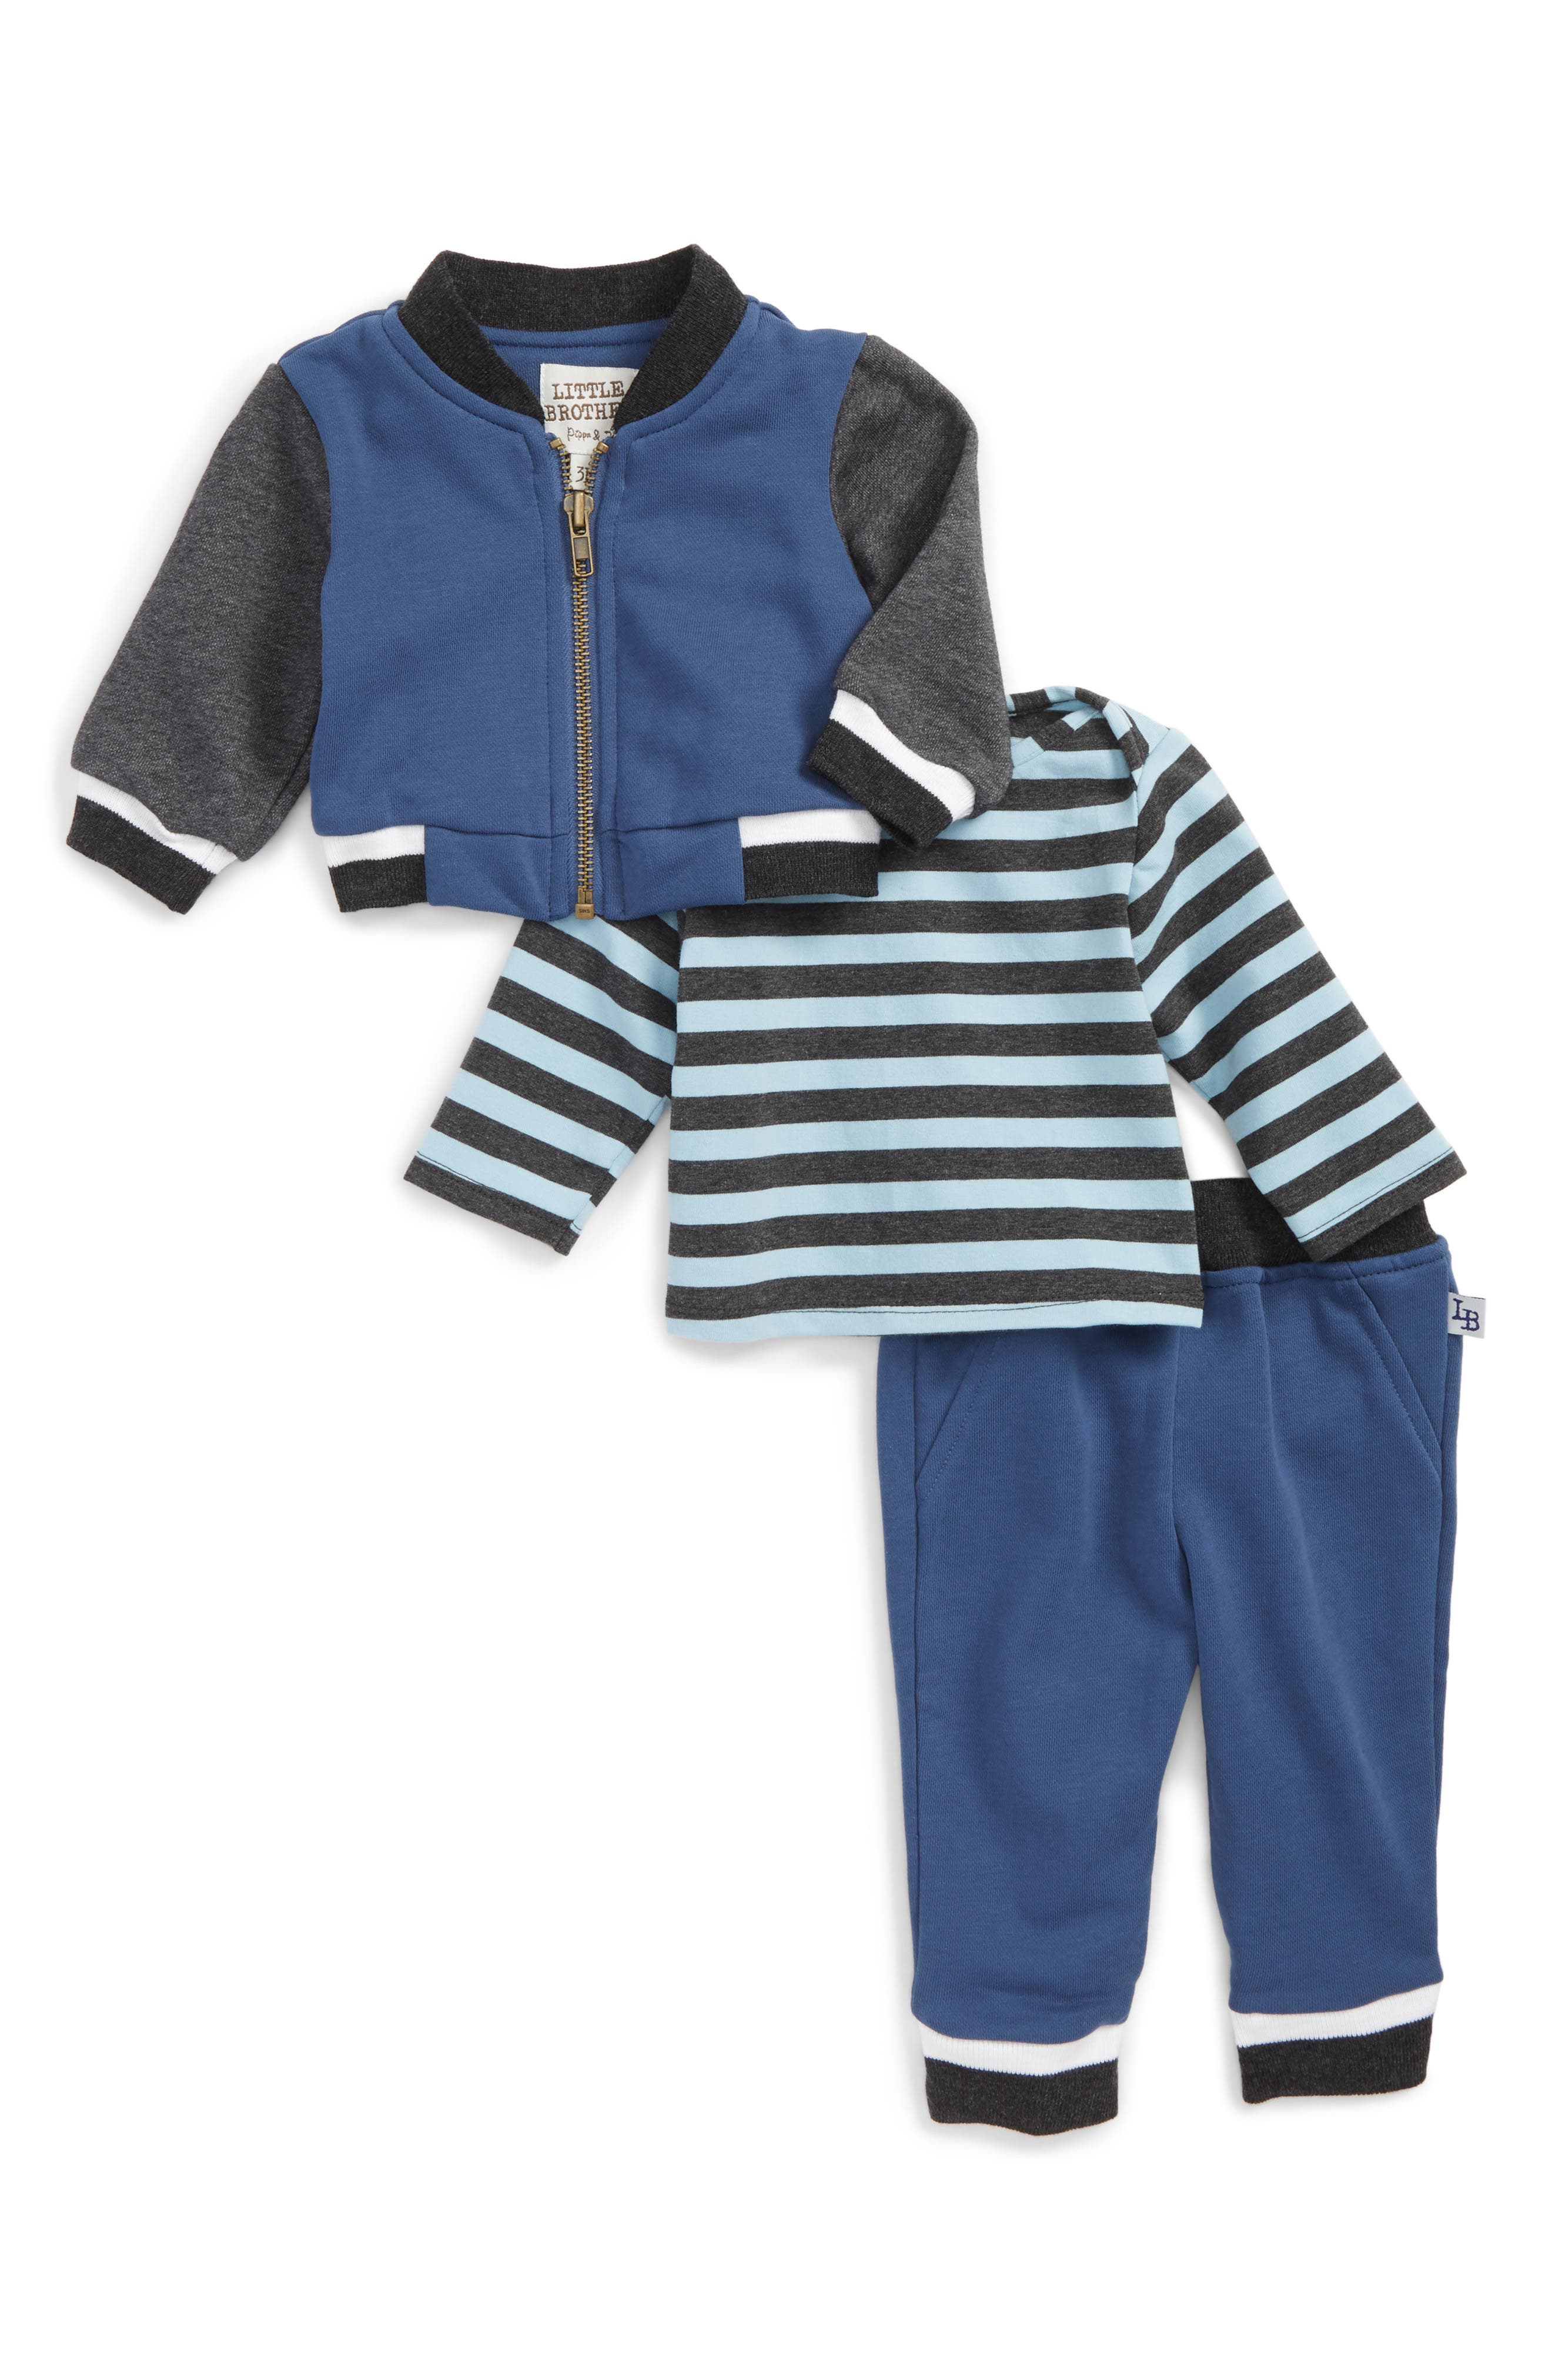 Little Brother by Pippa & Julie Hooded Jacket, Top & Sweatpants Set (Baby Boys)